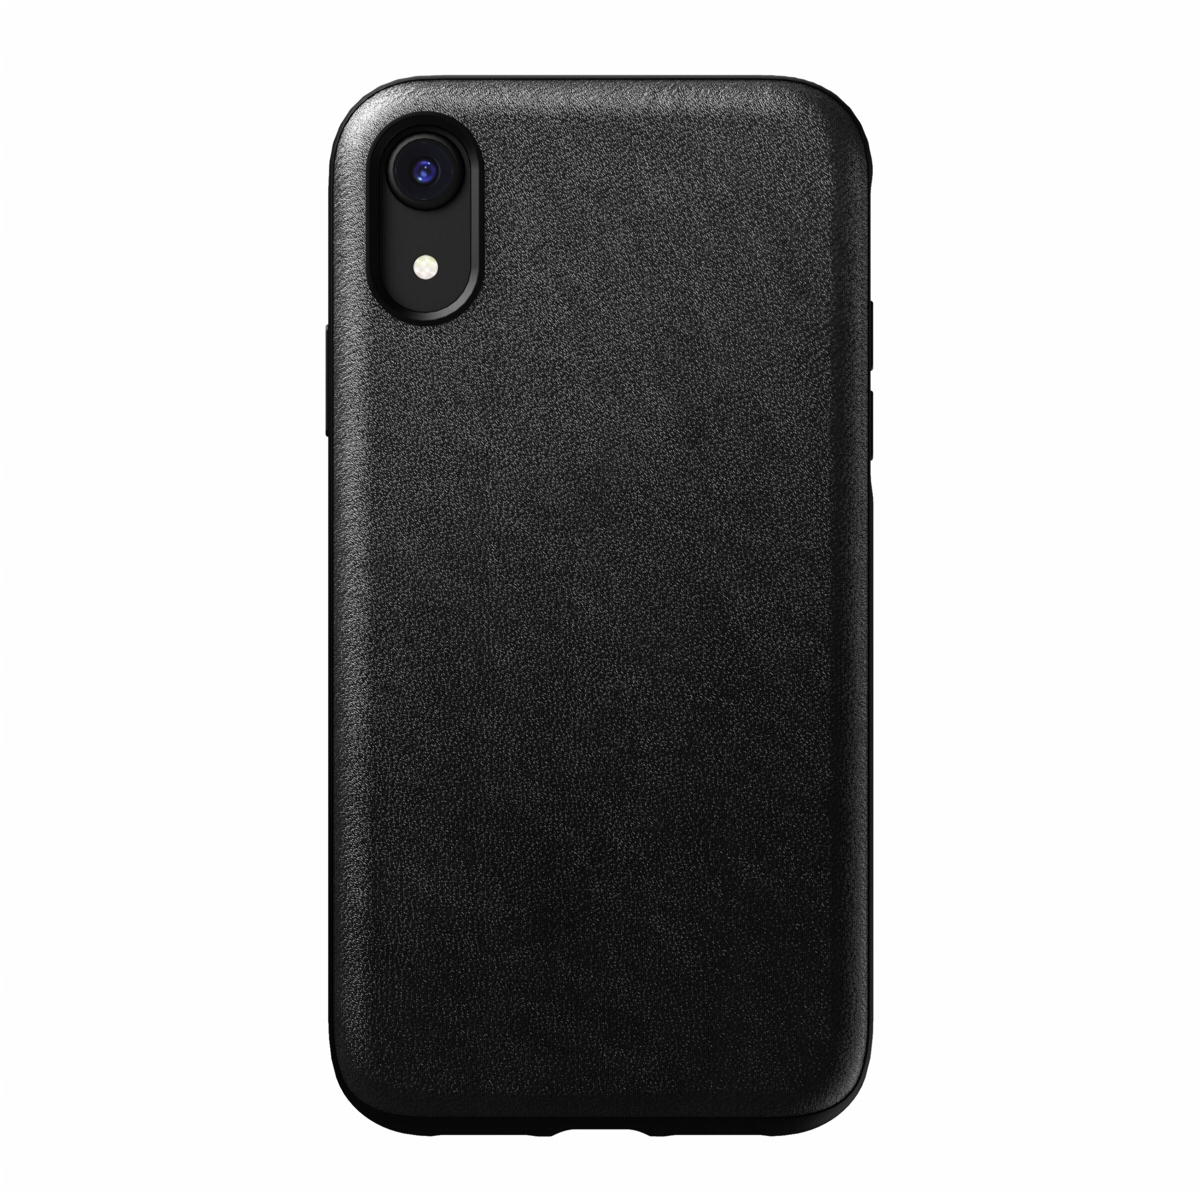 Nomad Case Leather Rugged Black für iPhone XR